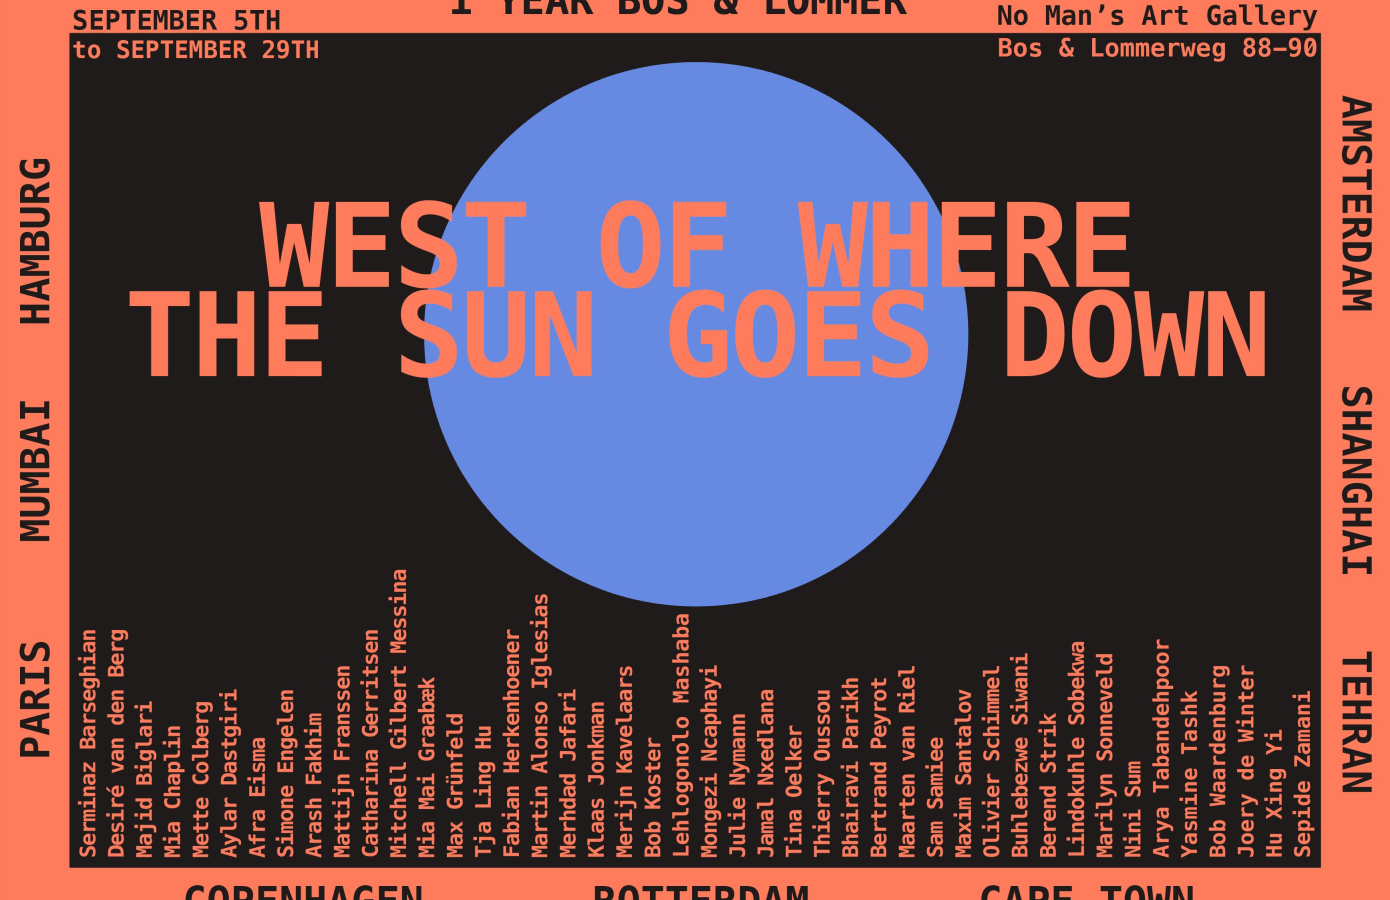 west of where the sun goes down, Desiré van den Berg, Majid Biglari, Mia Chaplin, Afra Eisma, Arash Fakhim, Fabian Herkenhoener, Jamal Nxedlana, Bertrand Peyrot, Sam Samiee, Buhlebezwe Siwani, Lindokuhle Sobekwa, Marilyn Sonneveld,